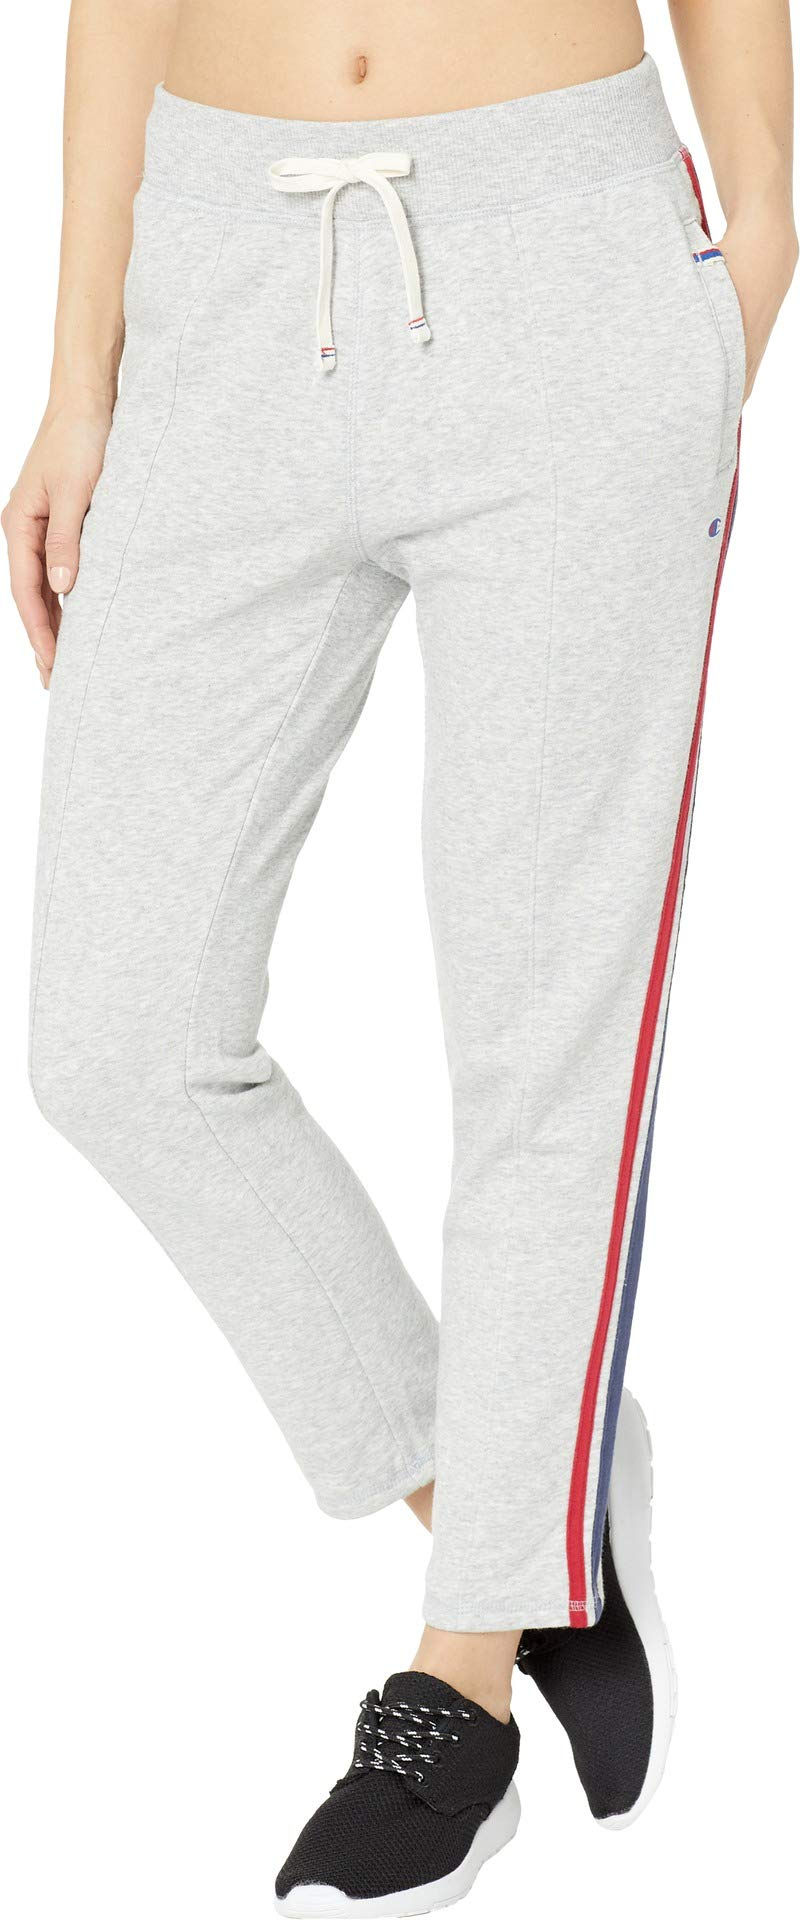 Champion Women's Heritage Warm Up Ankle Pant, Oxford Grey Heather/Imperial Indigo, X-Small